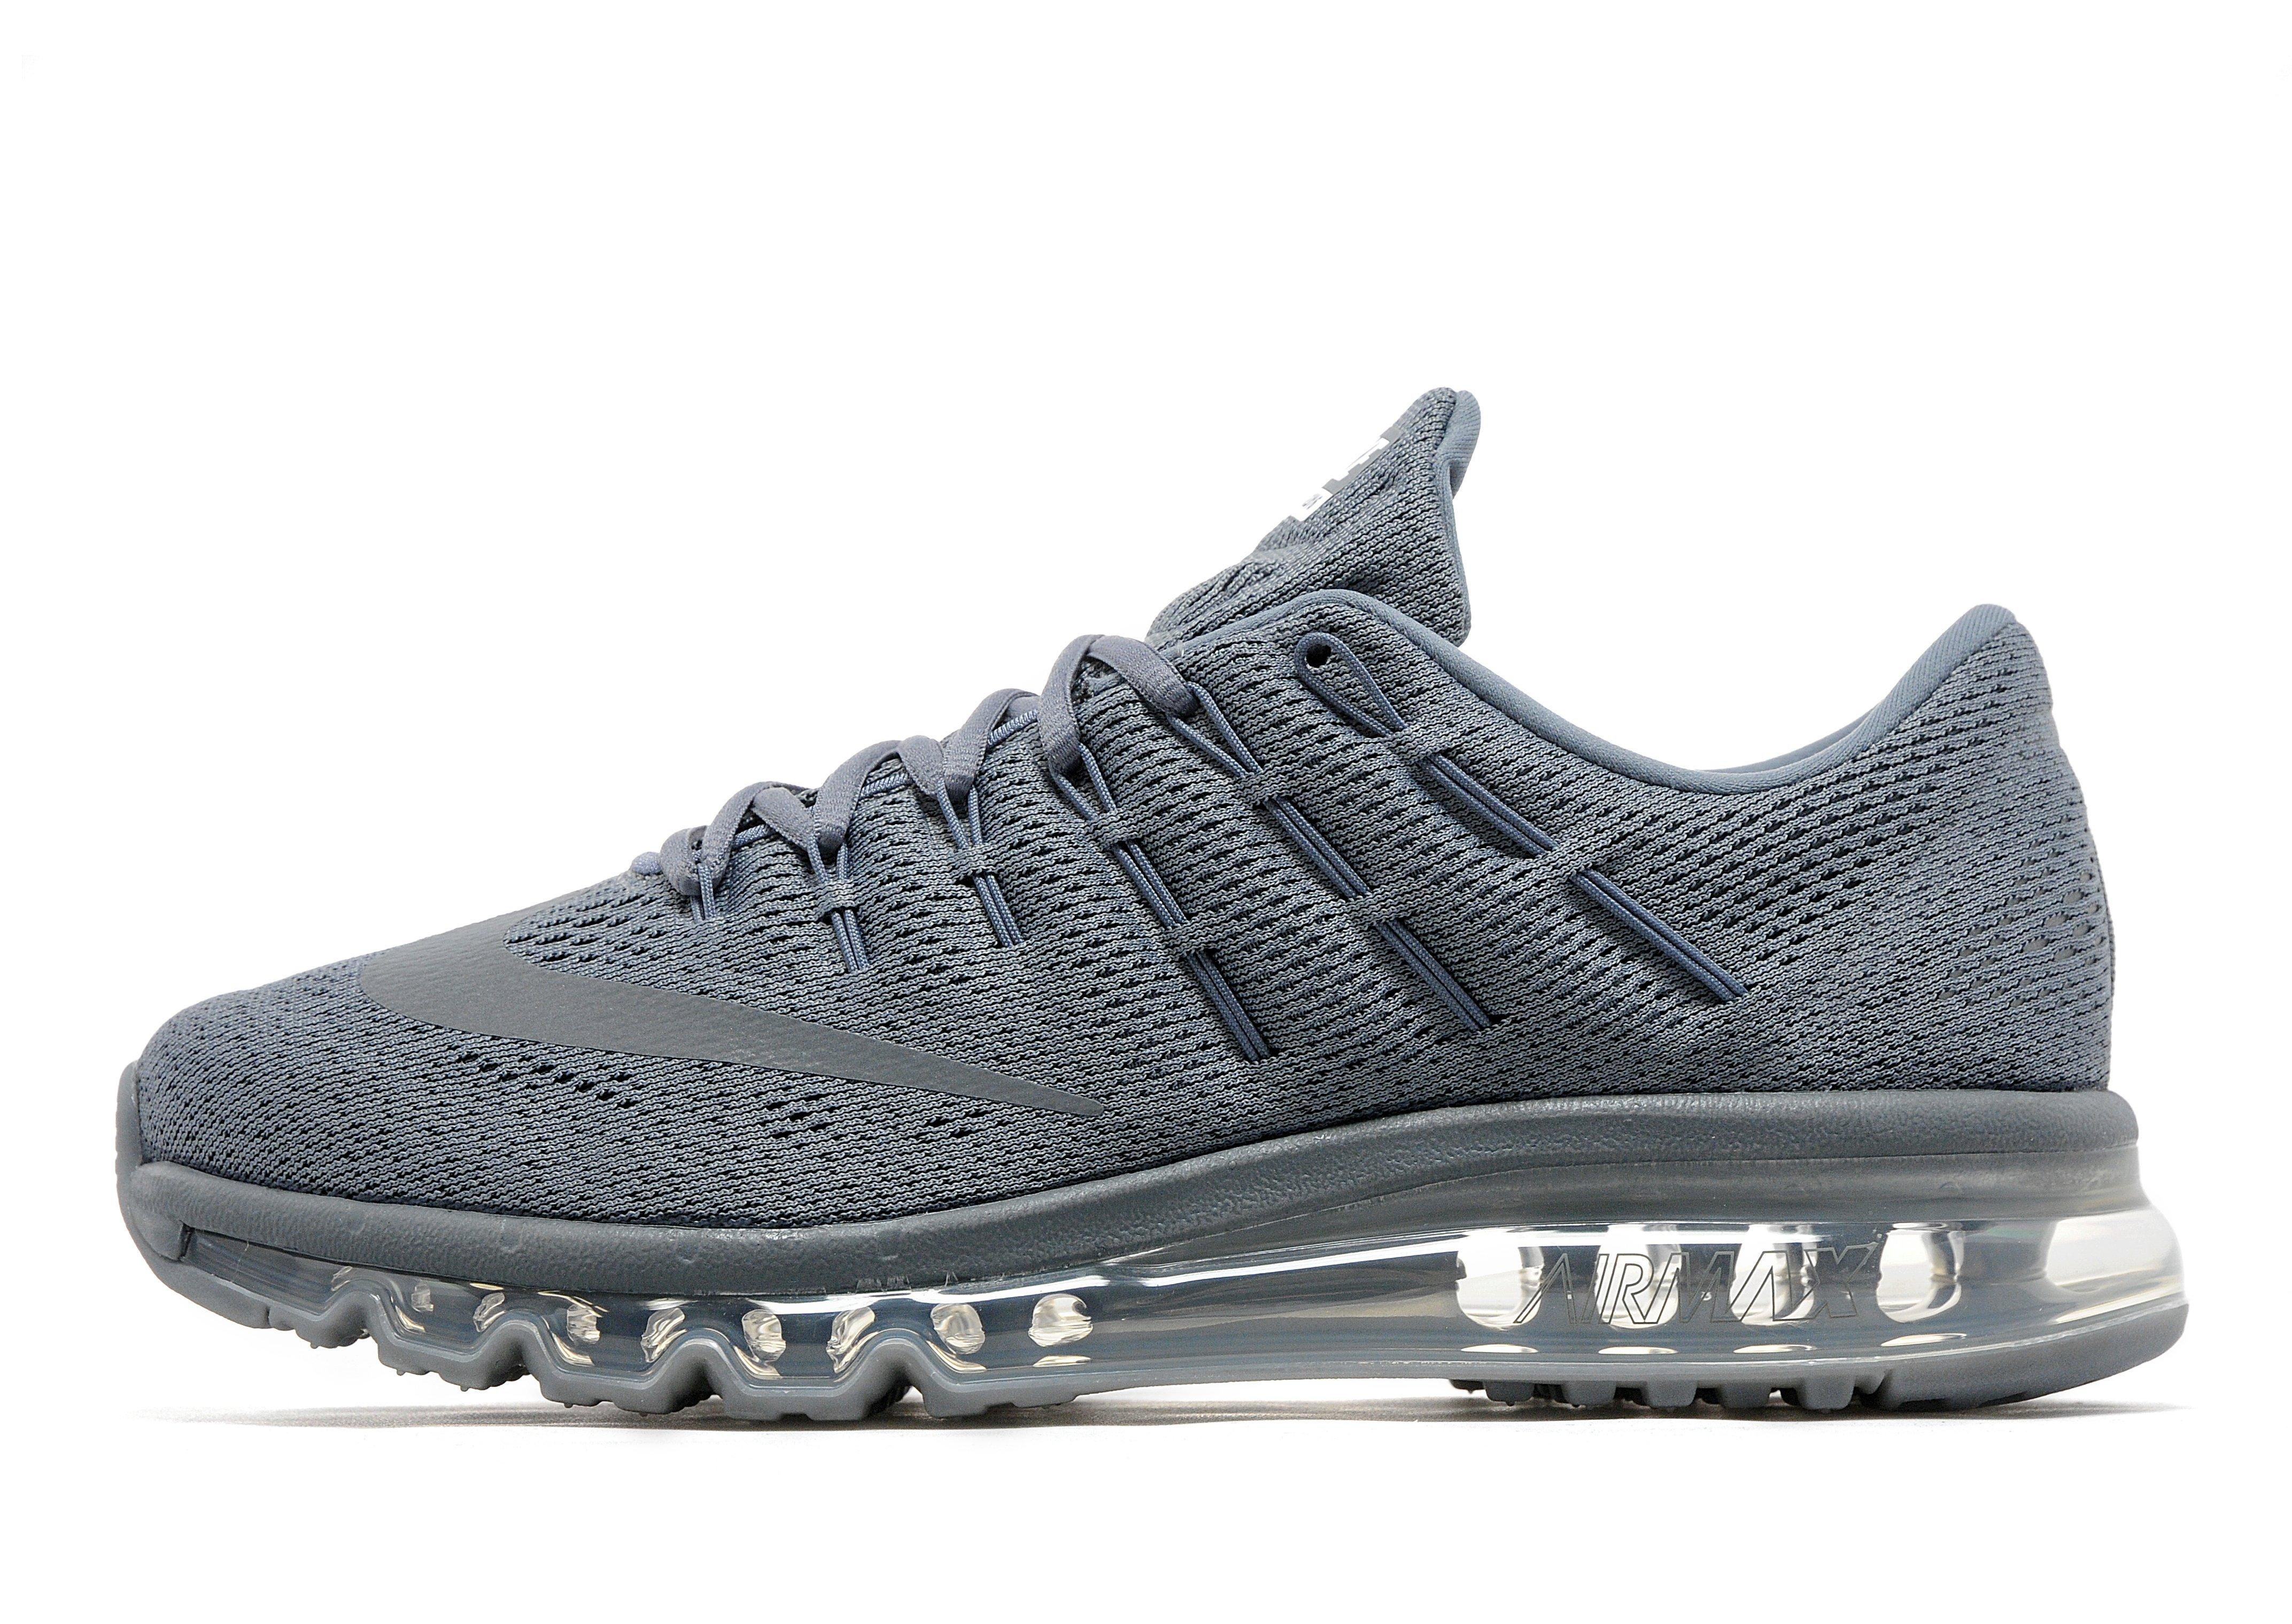 Pick Up The Nike Air Max 2016 N7 At Select Retailers Today